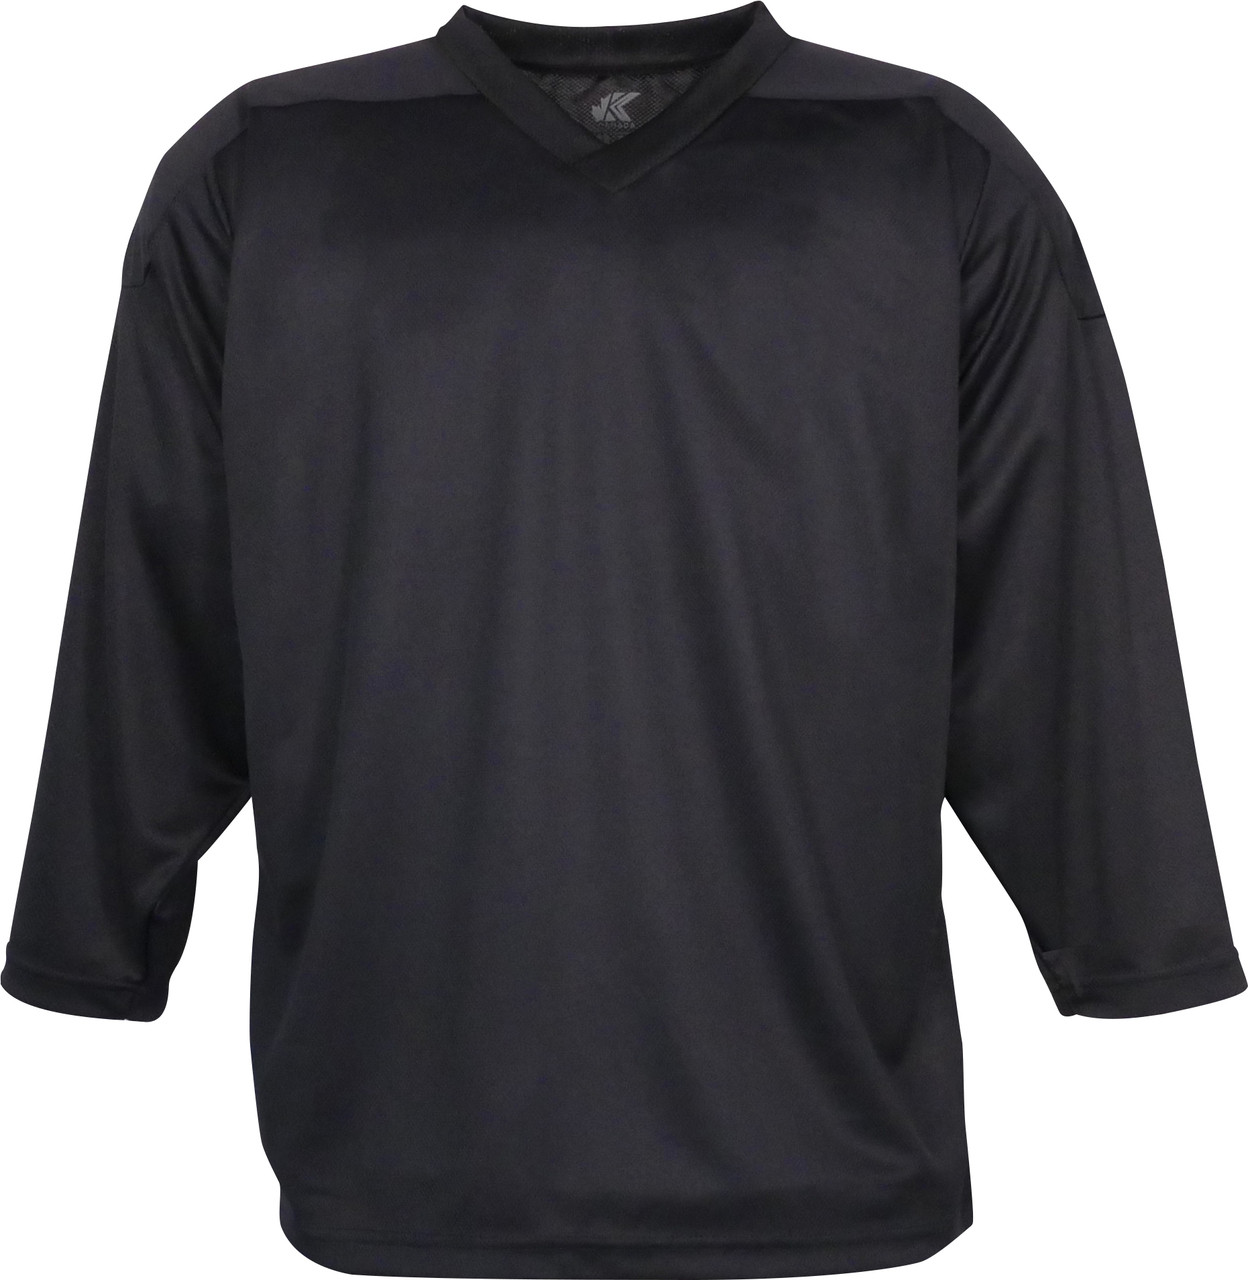 ba87218ccac0 Black Kobe Sportswear 5400Y Mid-Weight Pro-Knit Youth Practice Jersey